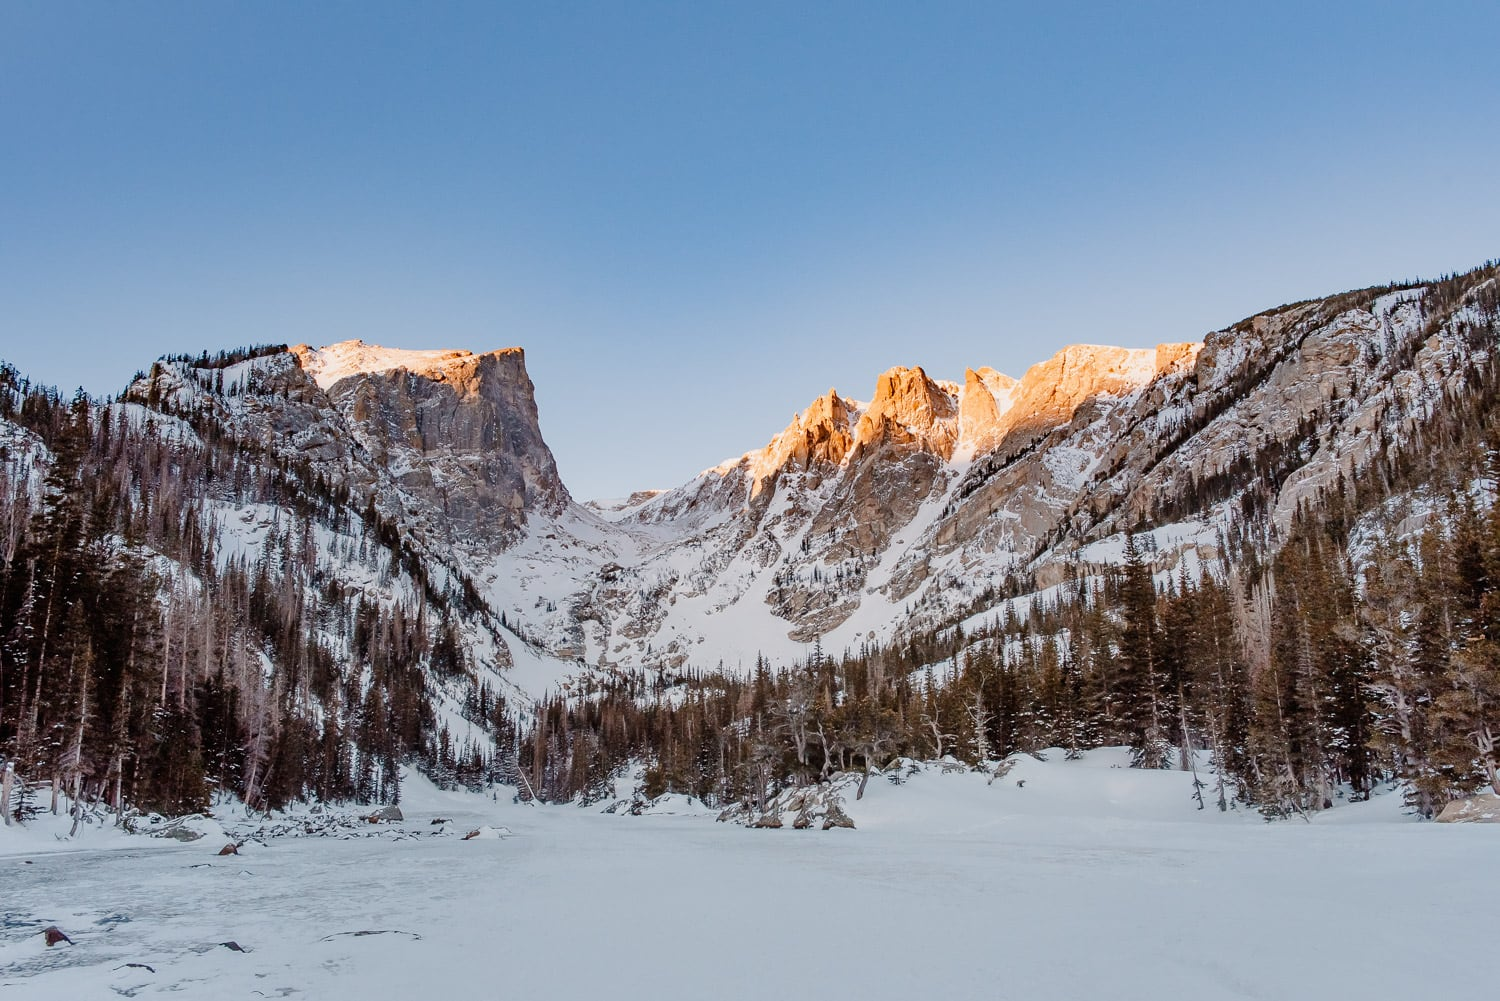 Dream lake Colorado photo of an alpine lake in the middle of winter as the sun comes up creating an alpine glow